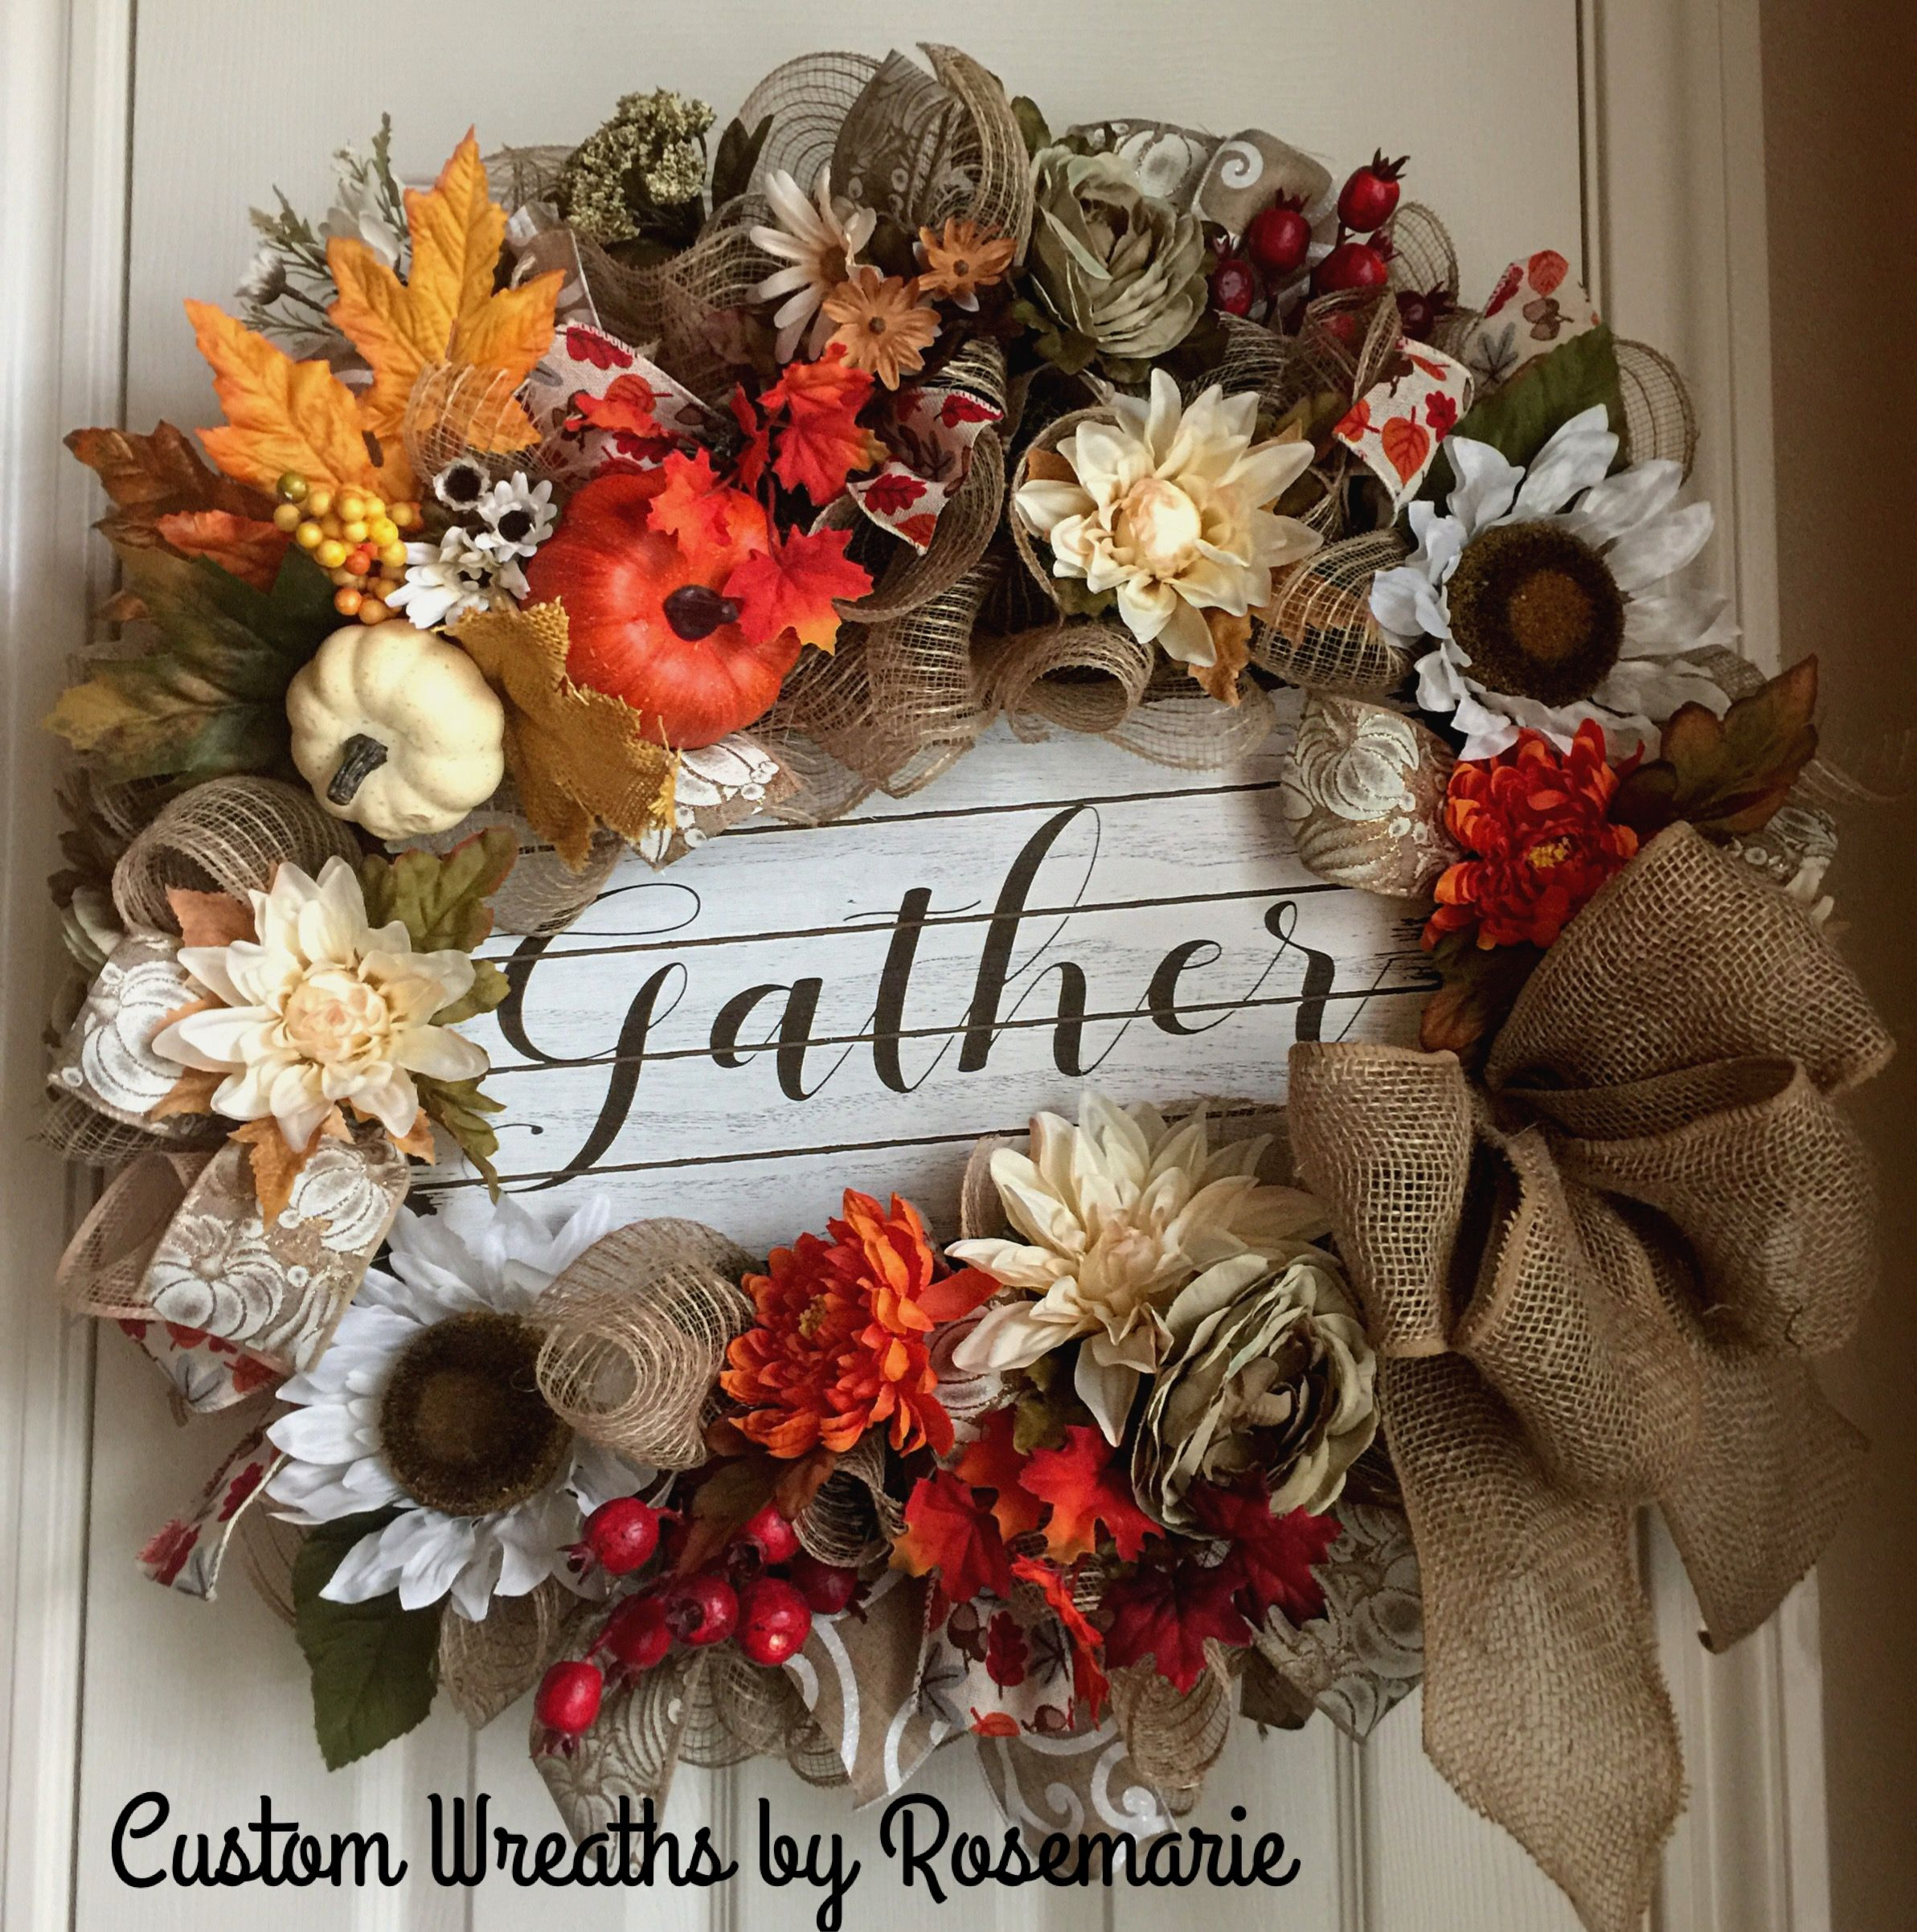 Burlap Wreaths, Fall Wreaths, Thanksgiving Wreaths, Trendy Tree, Fall  Things, Wall Pockets, Fall Decorations, Holiday Decorating, Pumpkins,  Christmas